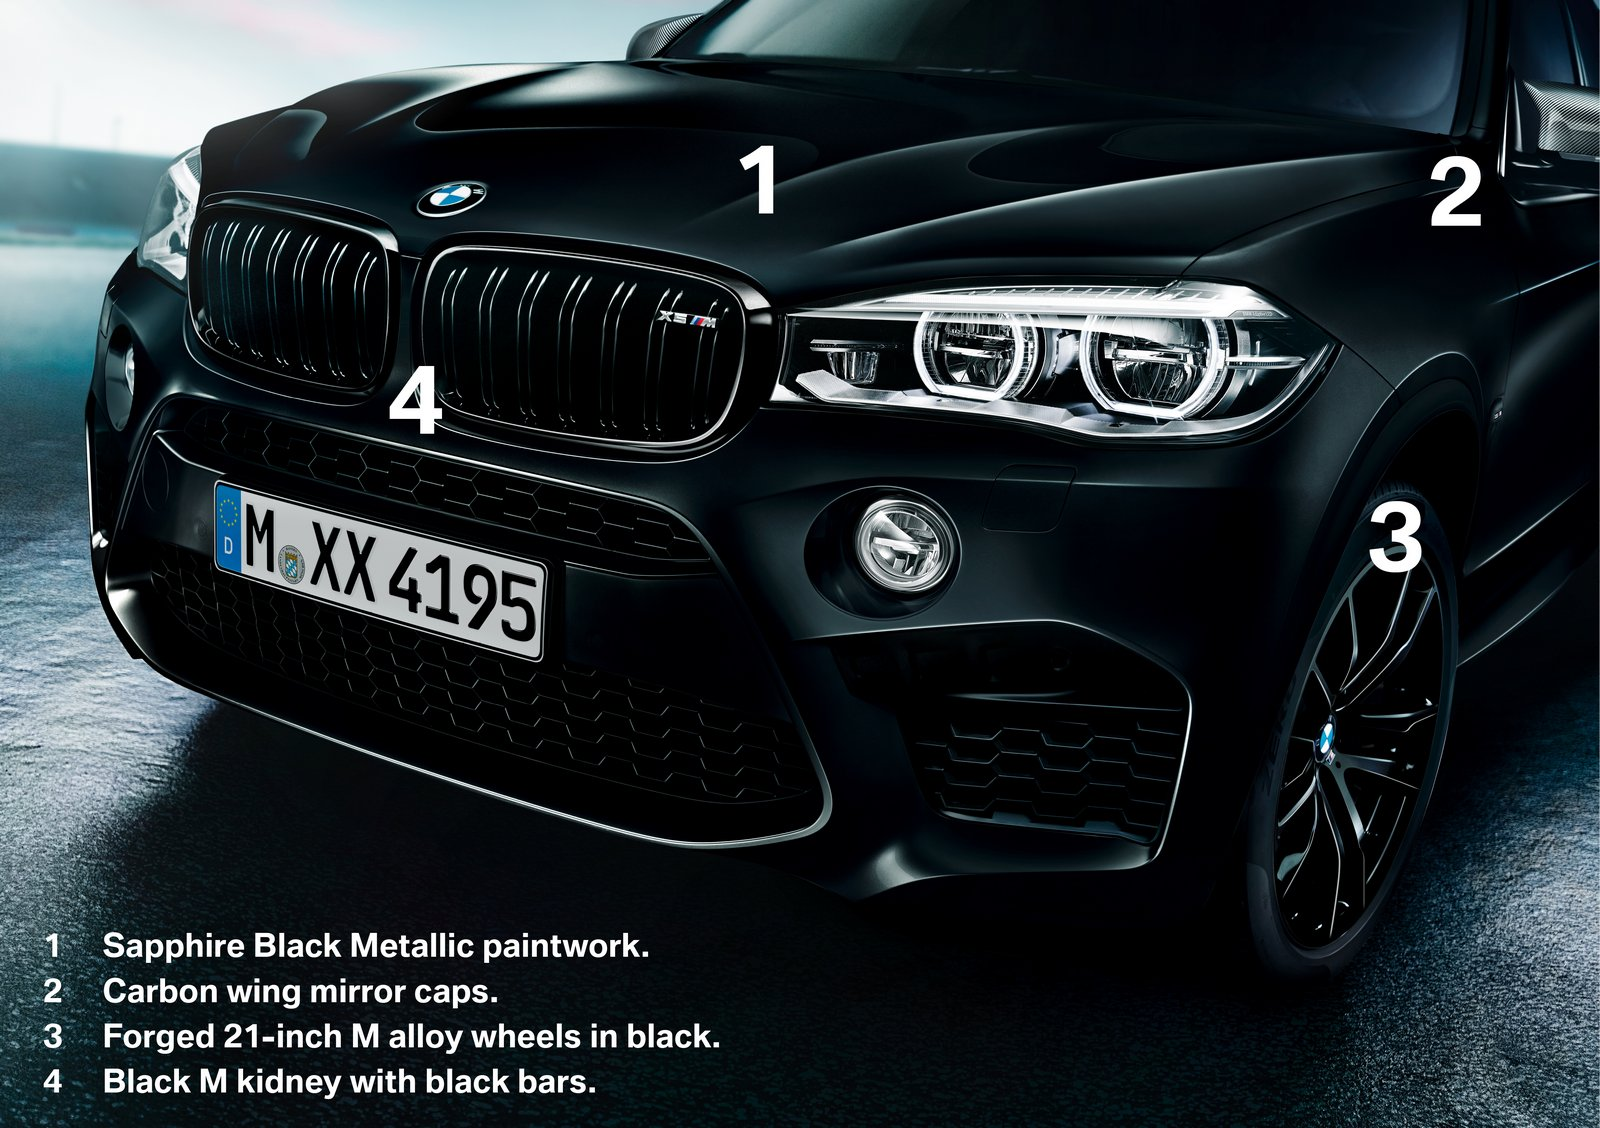 BMW-X5-M-Black-Fire-Edition-15